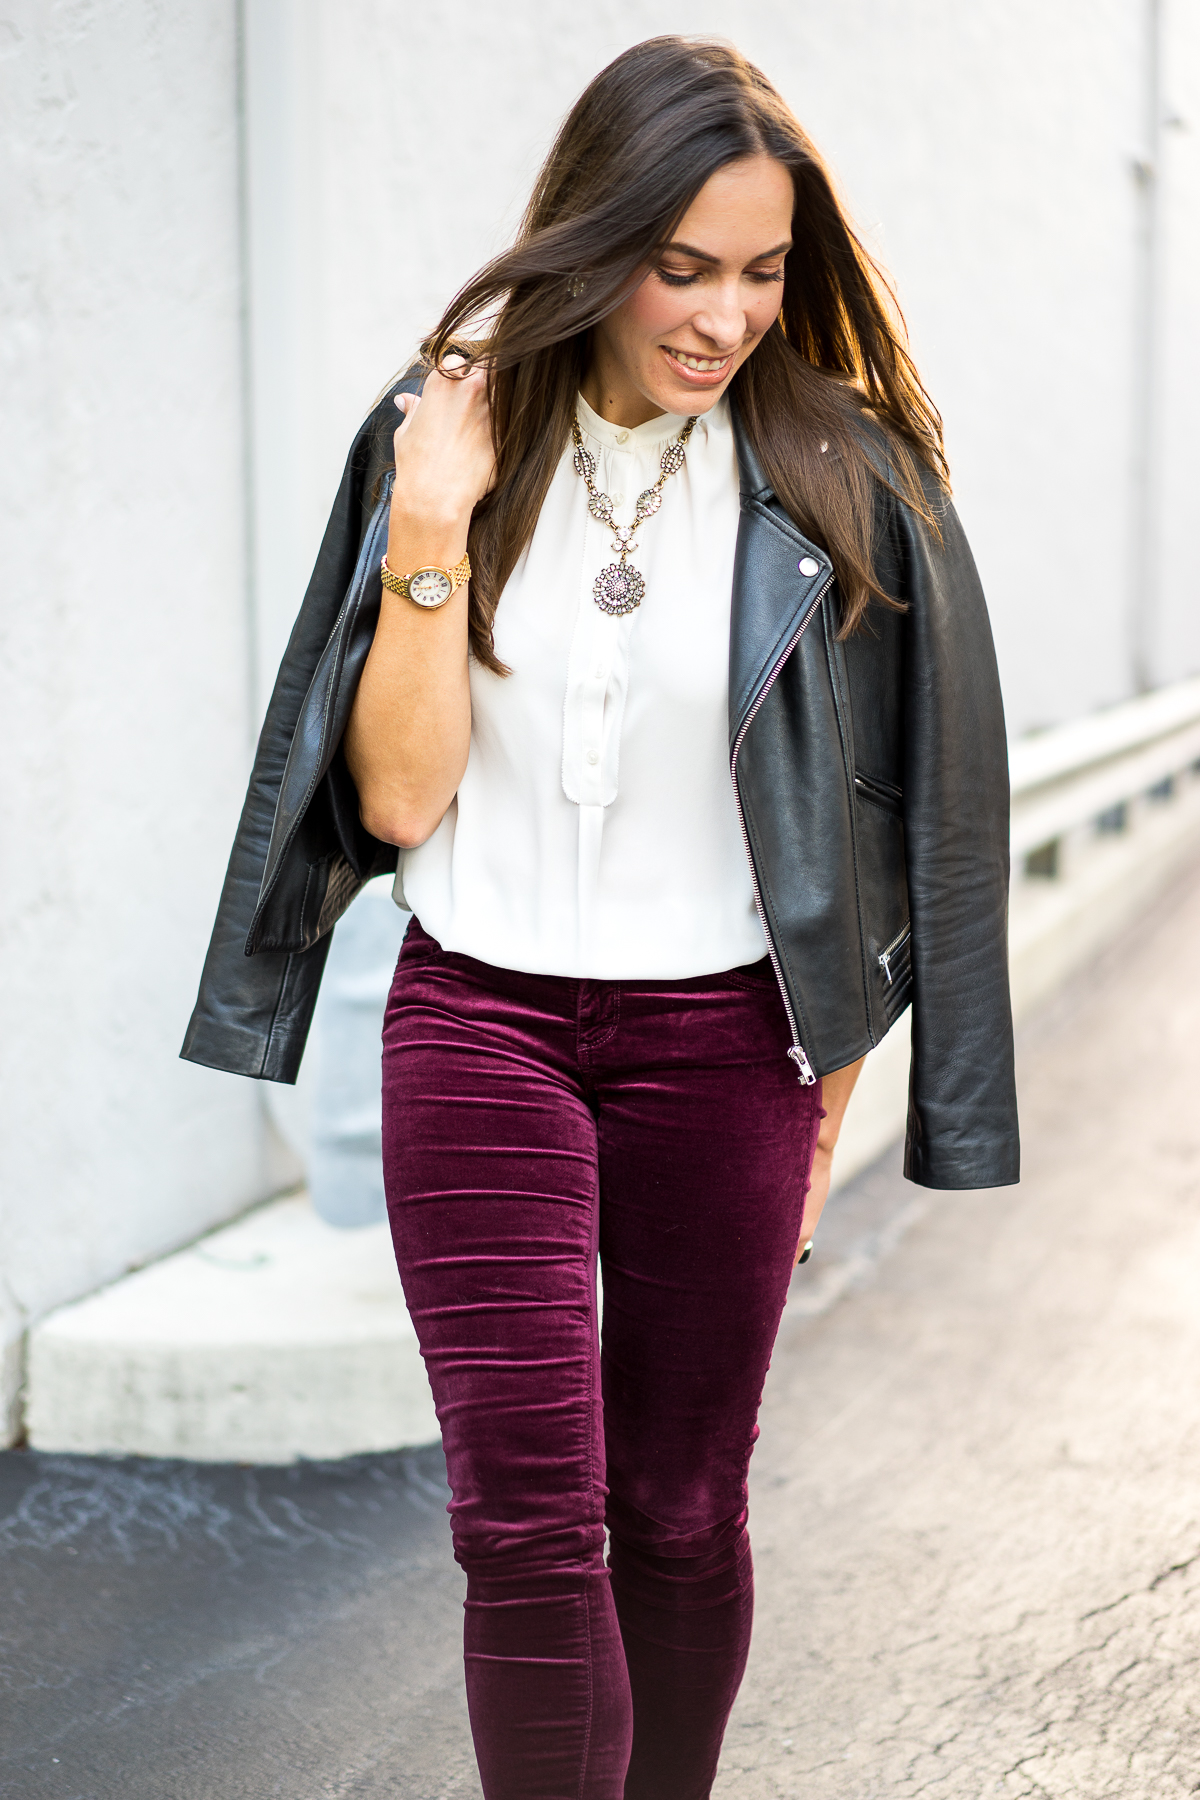 Shoes to wear with leggings. The key to making a look with leggings work is to choose the right shoe. Knee-high boots are always a great option, as they cover up the ankle line and make your leg look lean and long. Booties can work as well, as long as the leggings stay within the shoe.